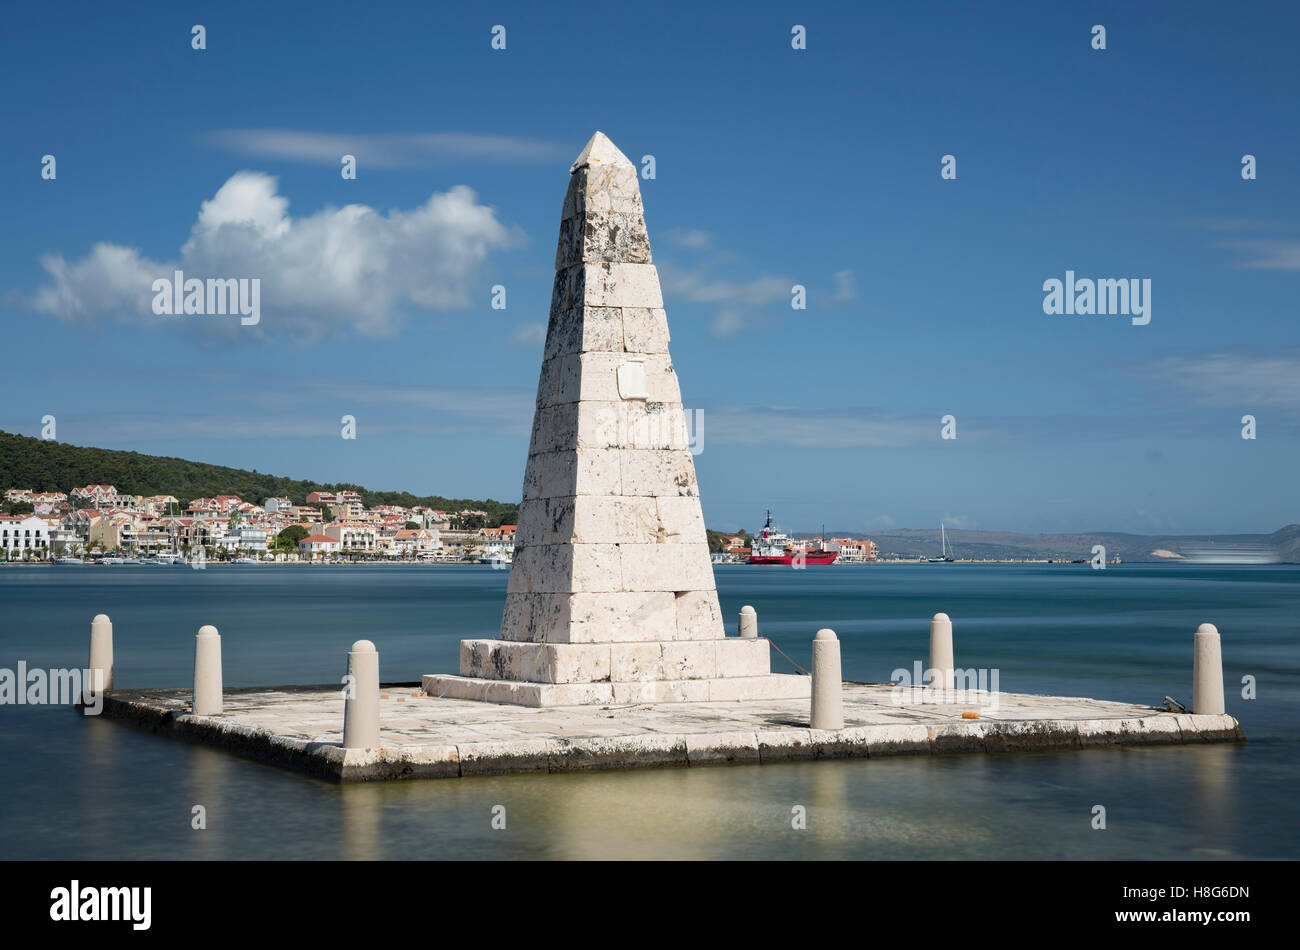 A monument for the British administration stands in Argostoli Bay, Kefalonia. - Stock Image